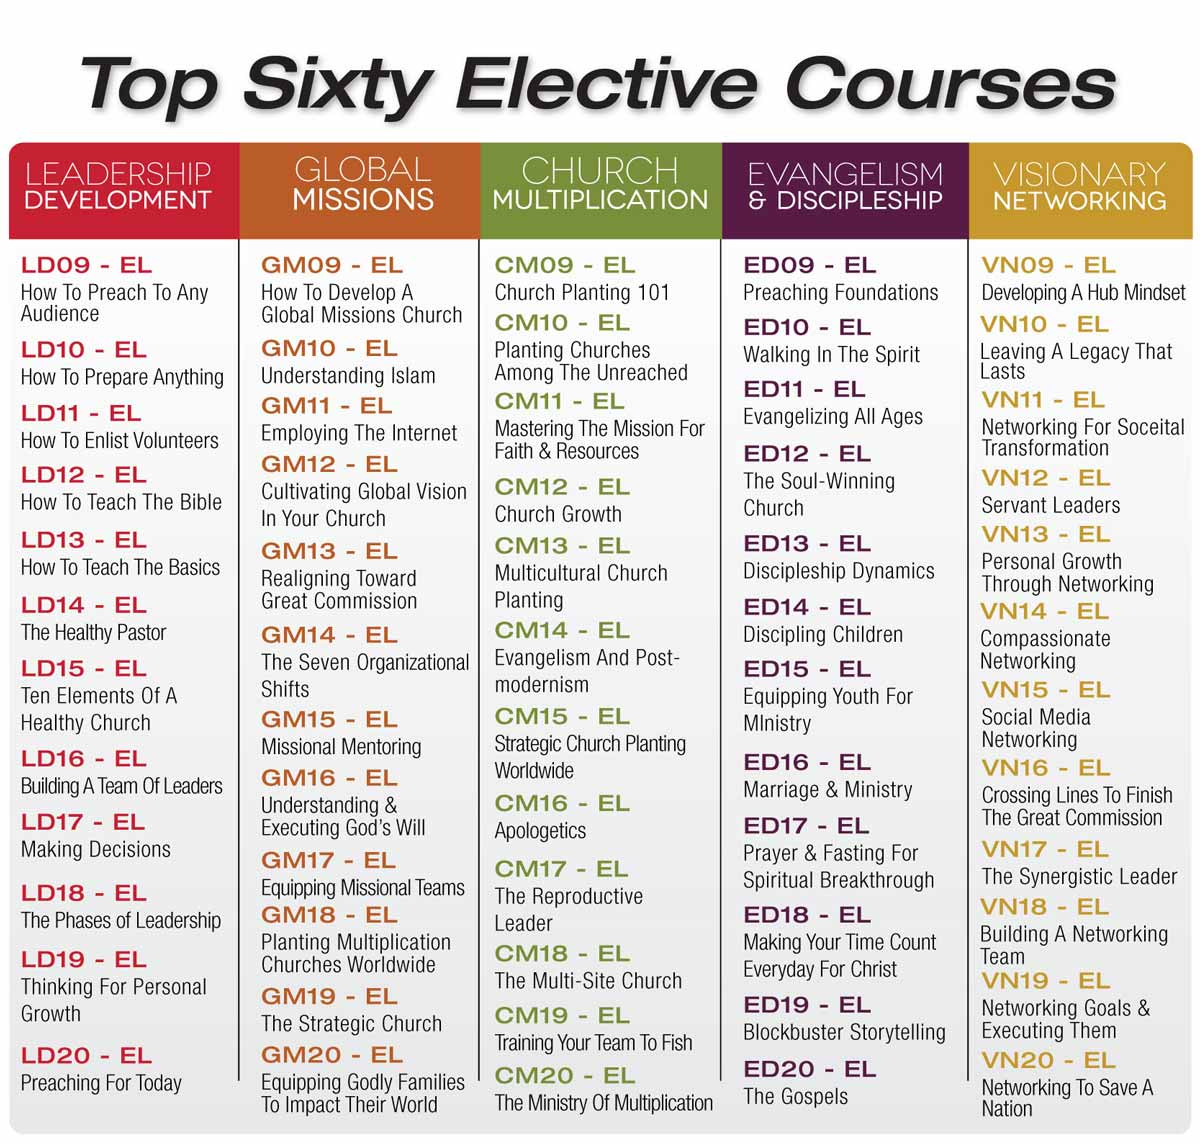 Top 60 Elective Courses